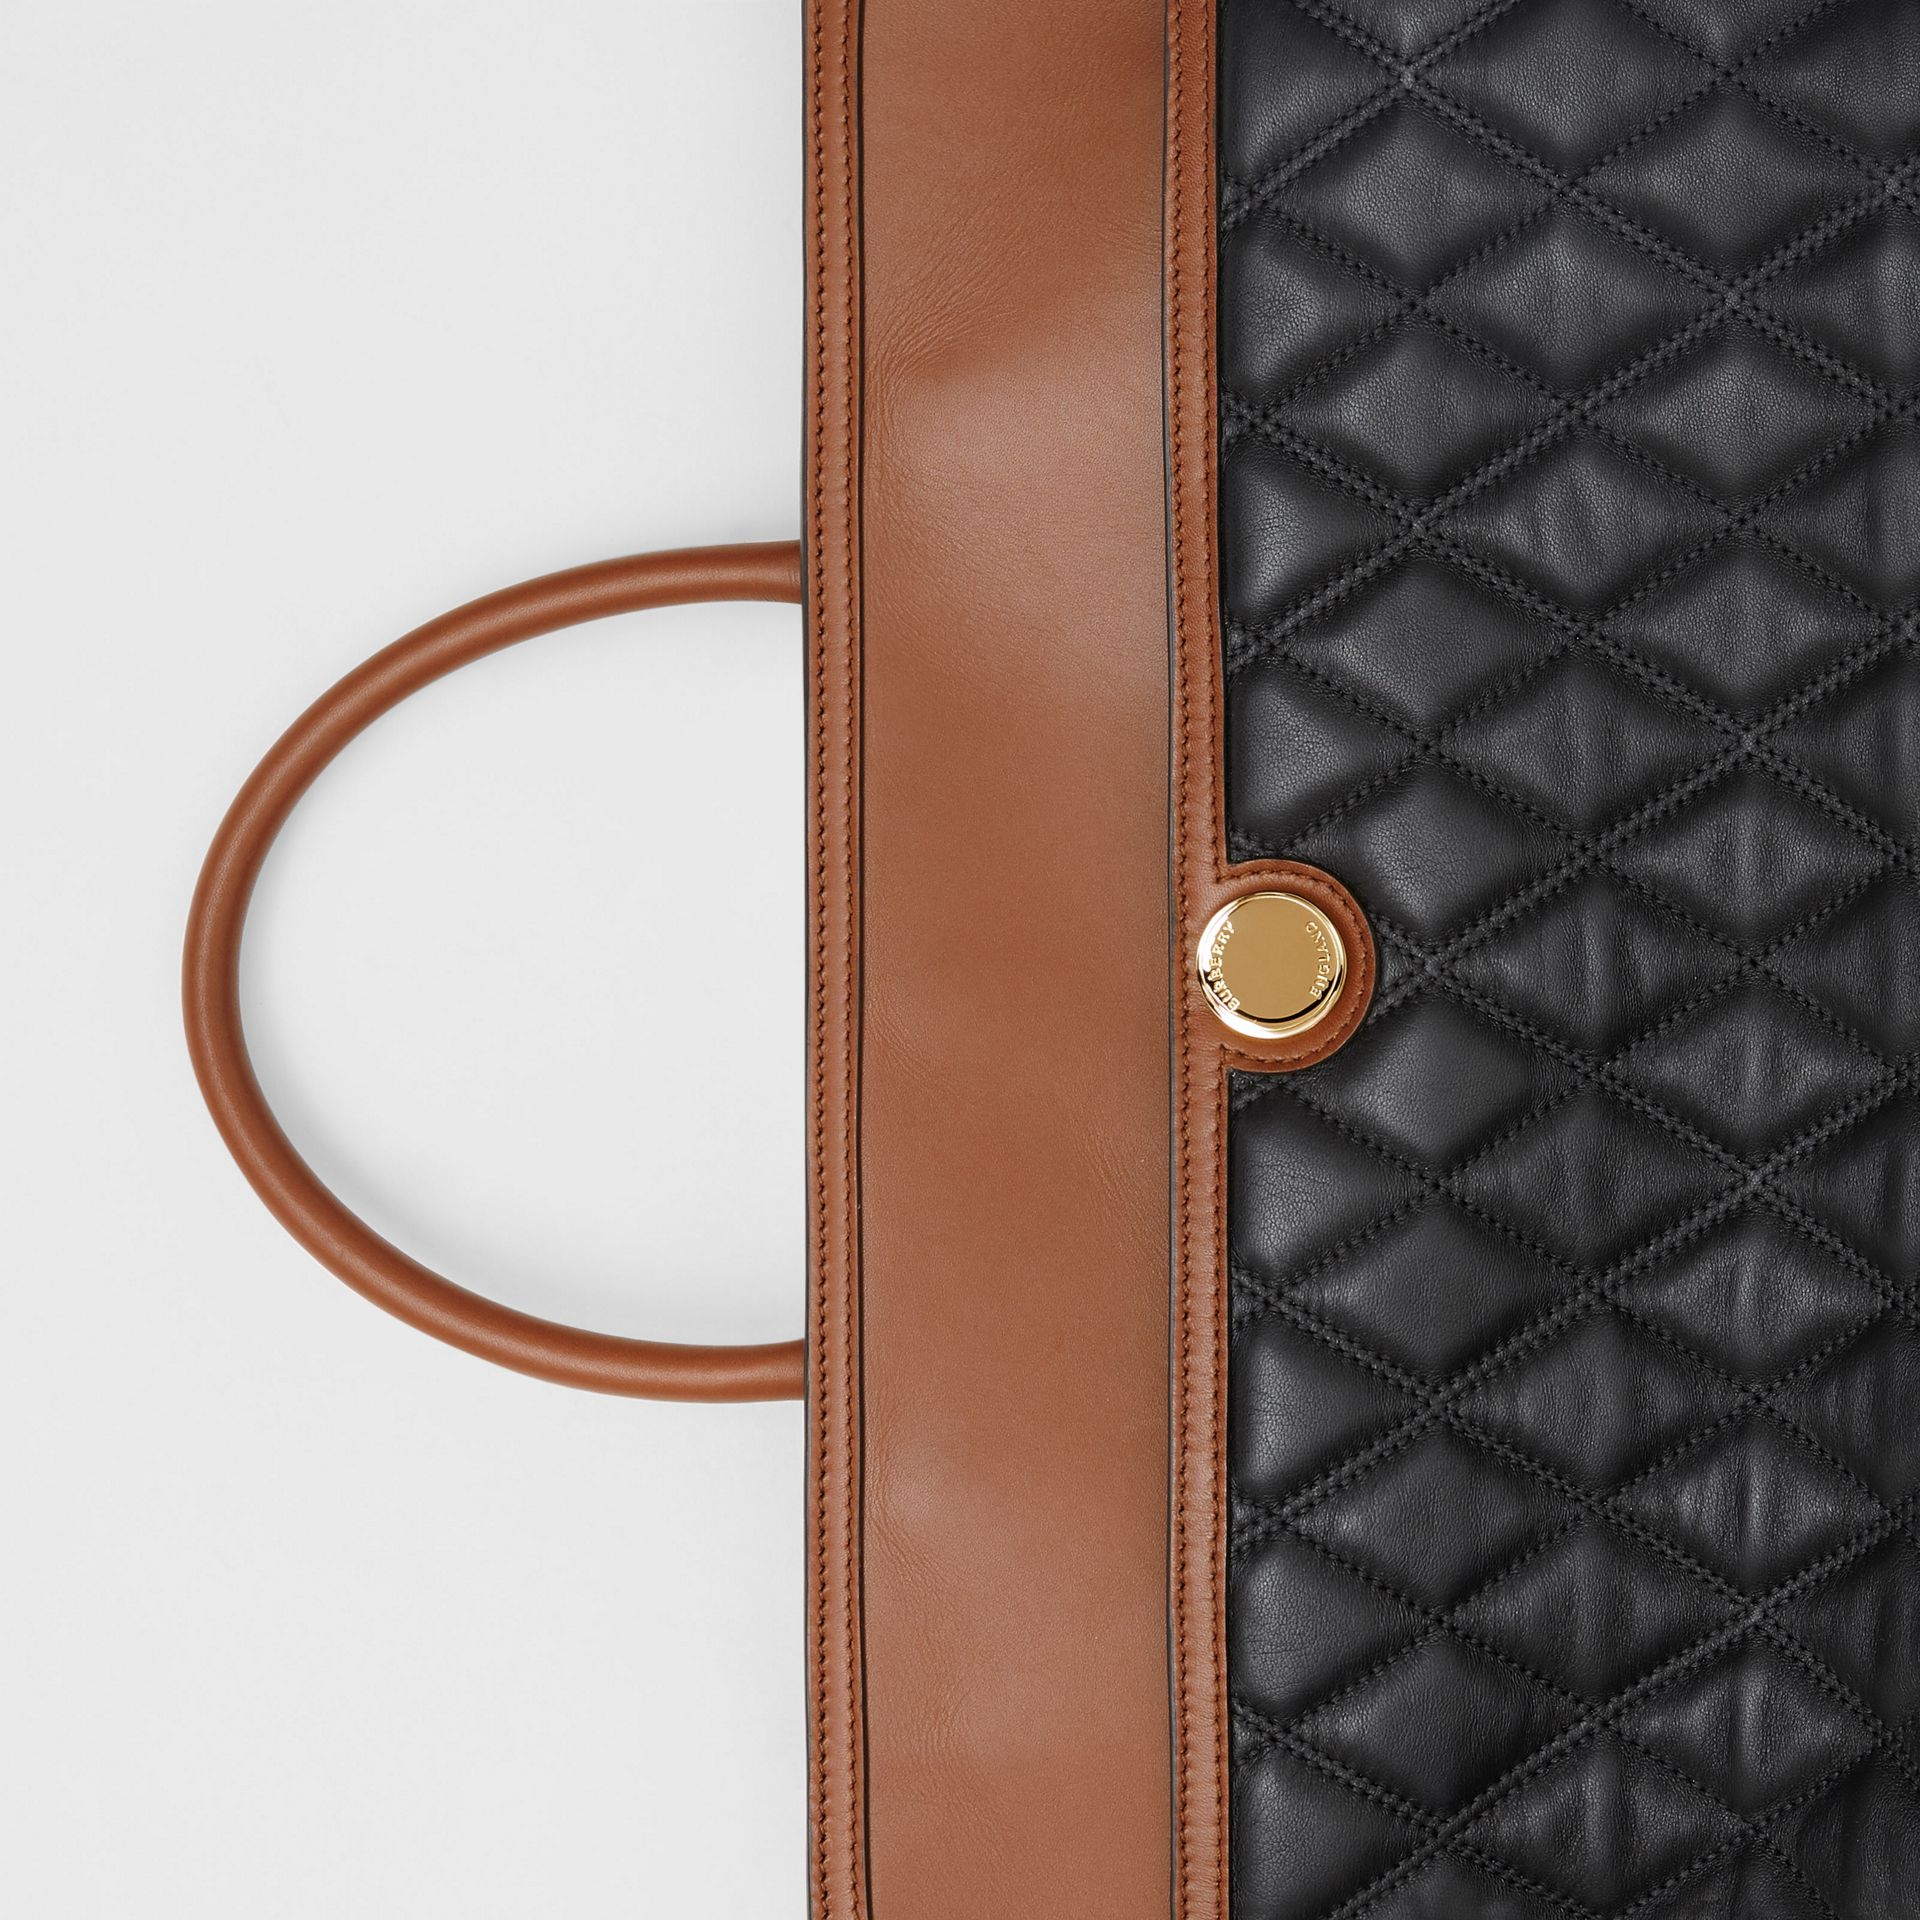 Quilted Lambskin Society Top Handle Bag in Black/brown - Women | Burberry United Kingdom - gallery image 7